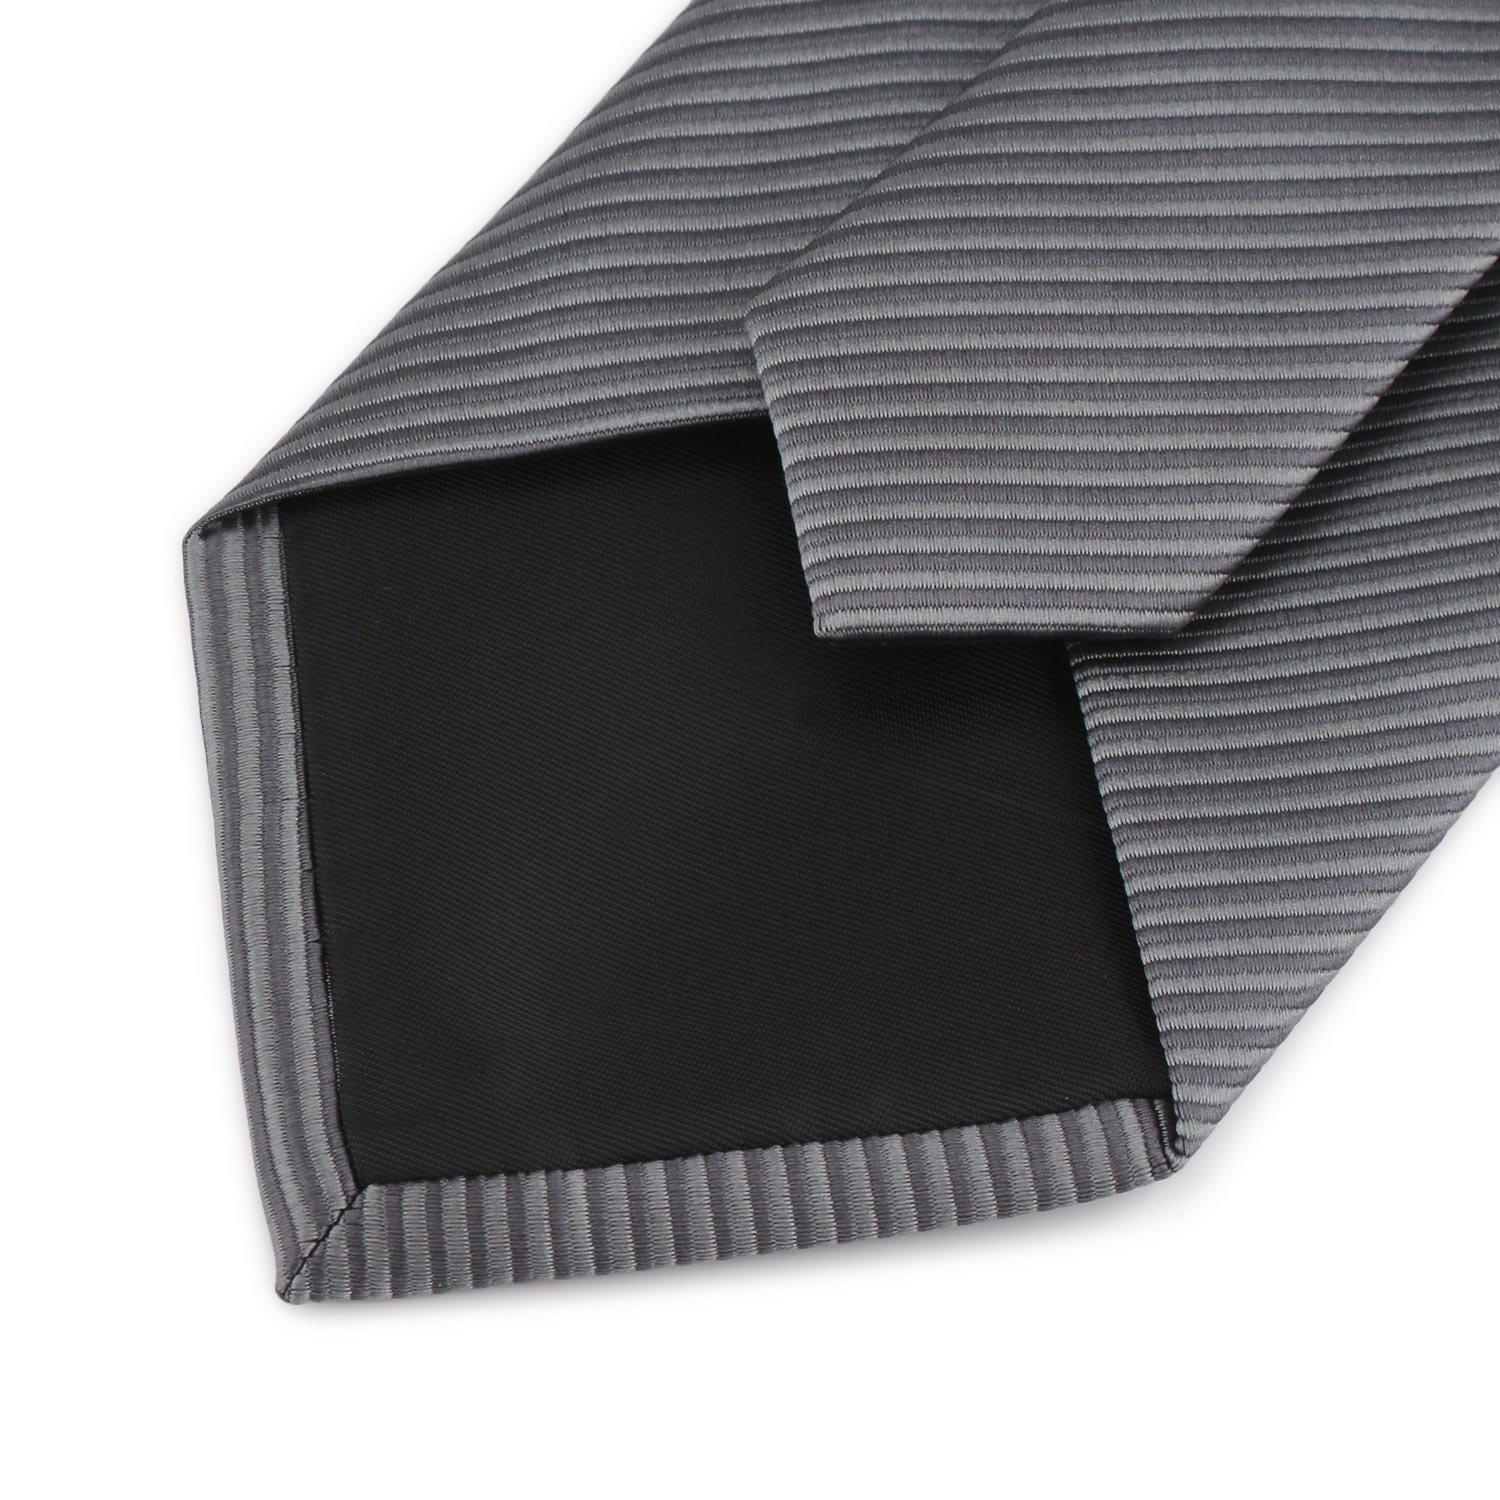 Mens Necktie Classic Striped Neckties, 54'' Long Polyester Solid Grey Neck Tie, Seasonless Formal Casual Business Necktie by Segbeauty (Image #9)